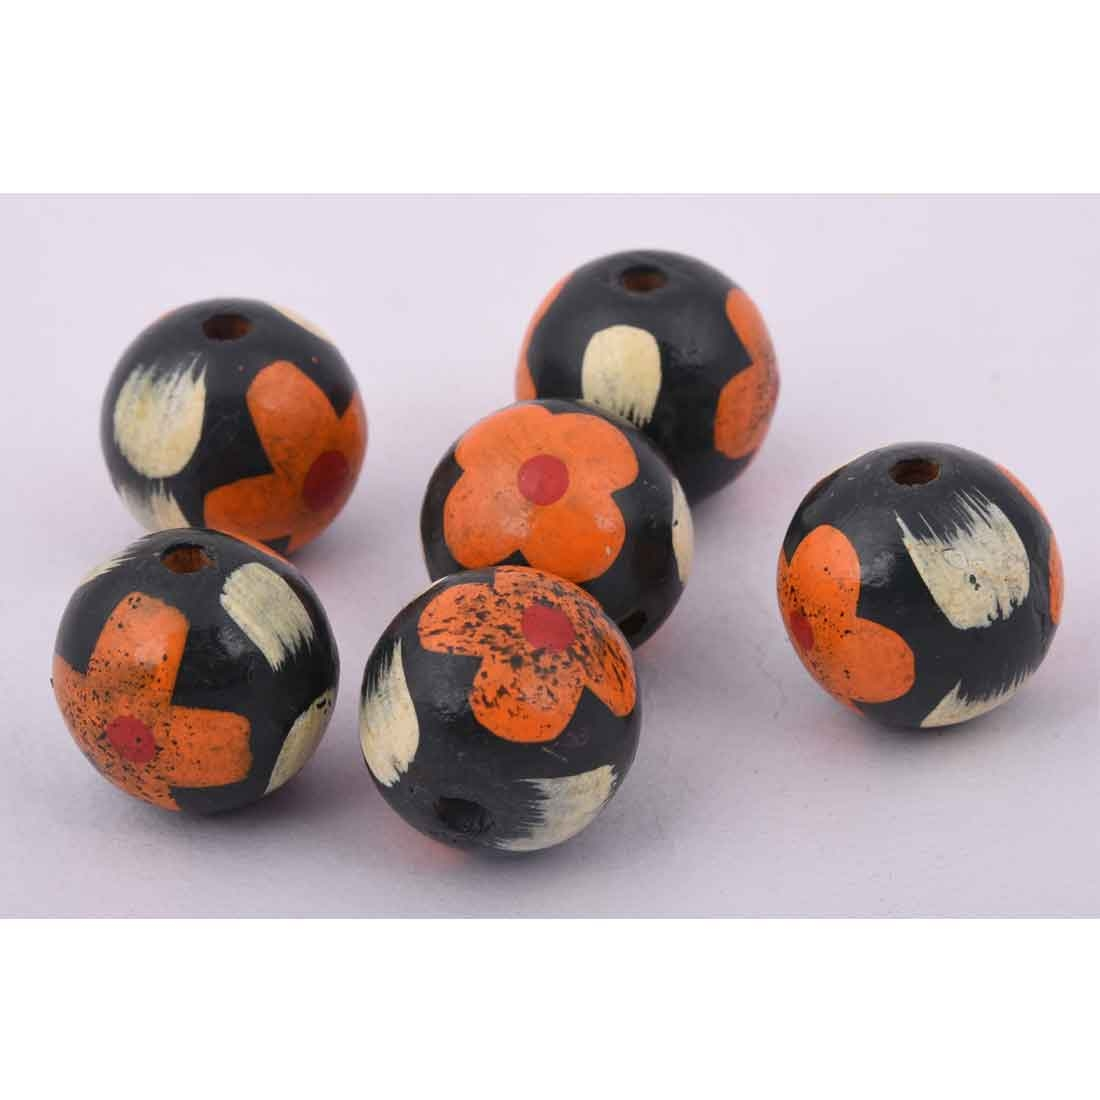 Beads India 1700085 Handcrafted Wooden Beads/Discounts Above 500 pcs